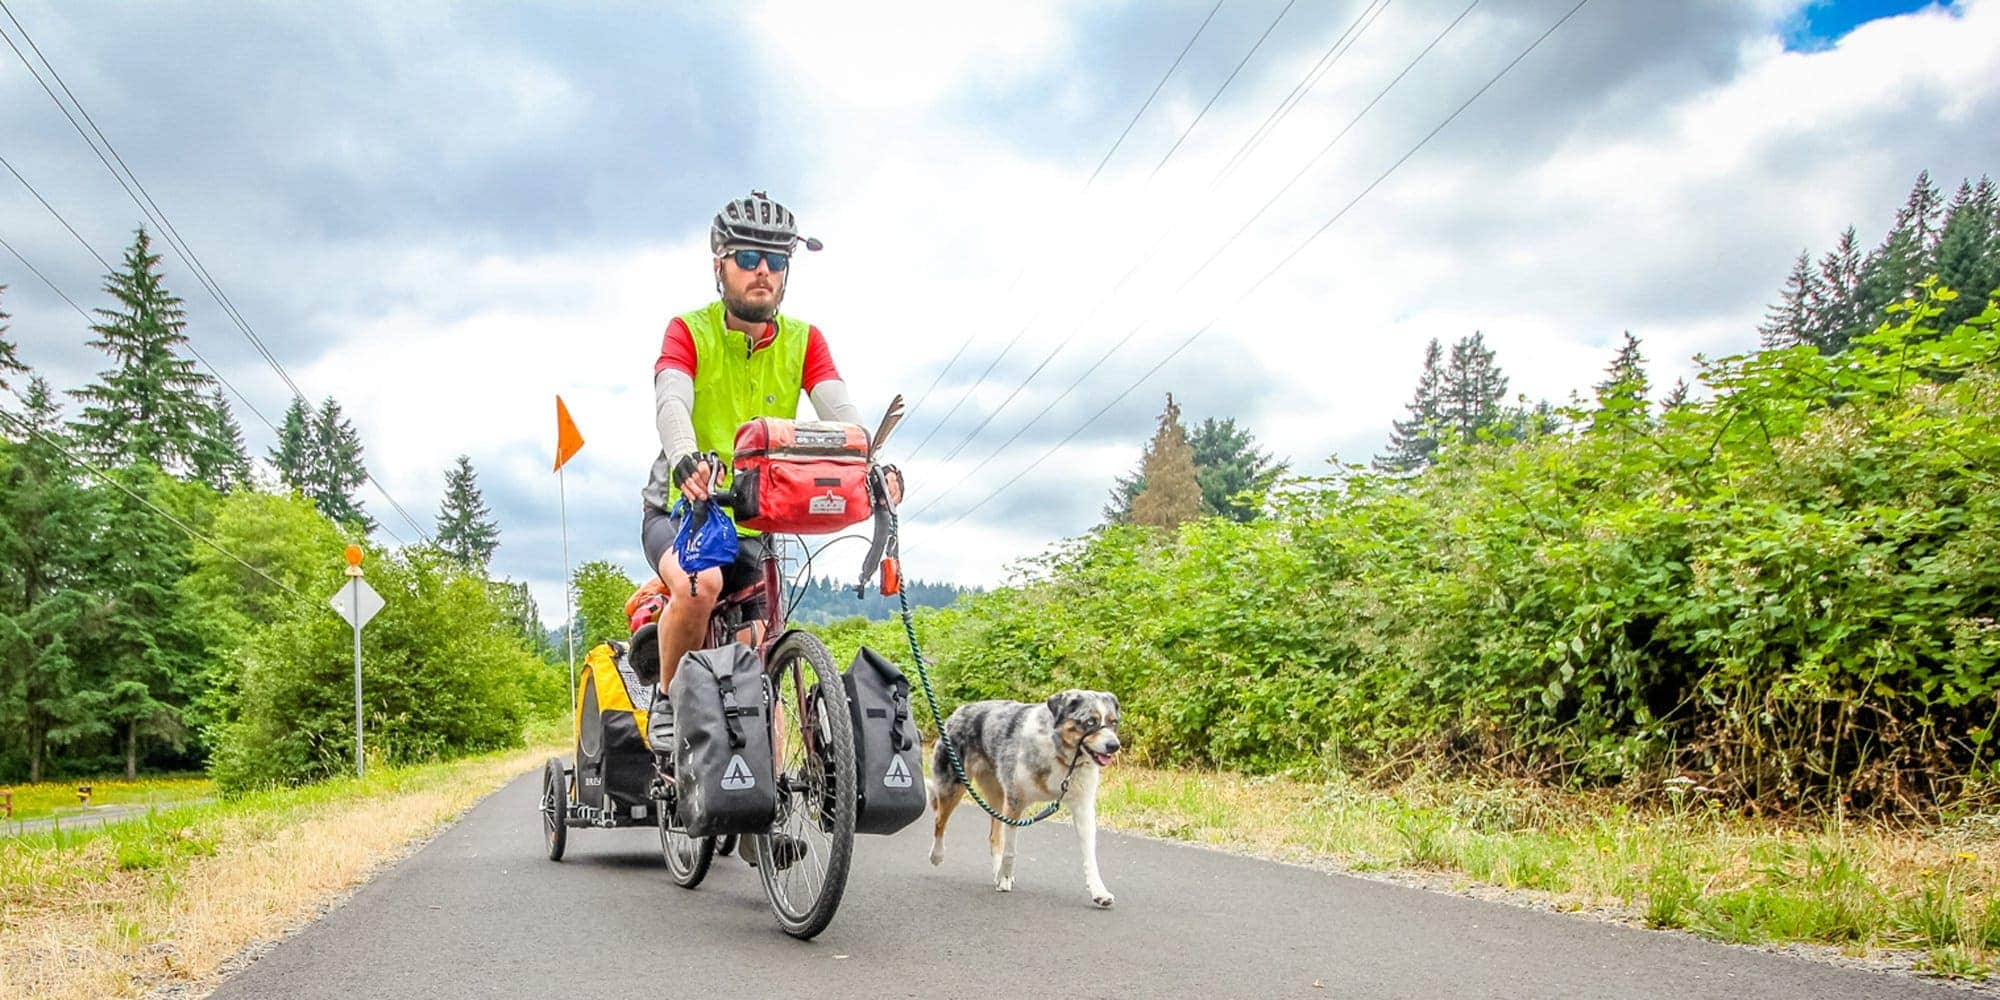 Cyclist riding with dog on leash on Springwater Trail near Portland